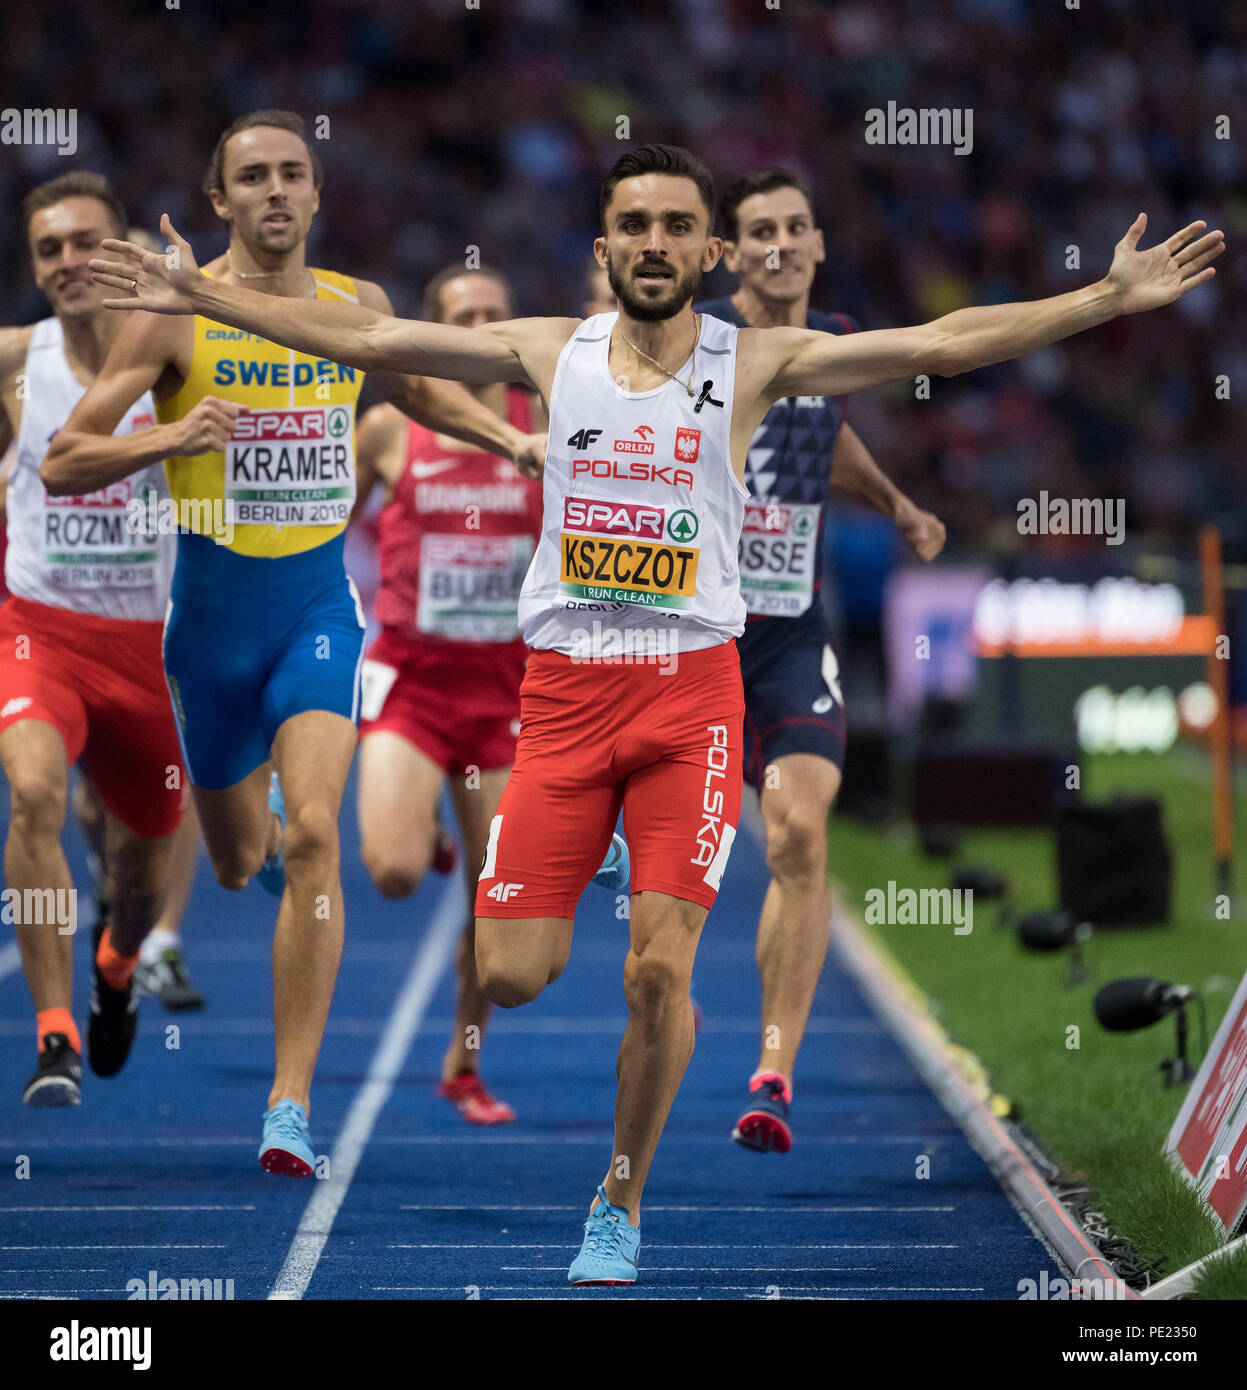 Berlin, Germany. 11th Aug, 2018. European Athletics Championships in the Olympic Stadium: 800 m finals, Men: Gold medallist Adam Kszczot from Poland cheers at the finish line. Credit: Sven Hoppe/dpa/Alamy Live News - Stock Image